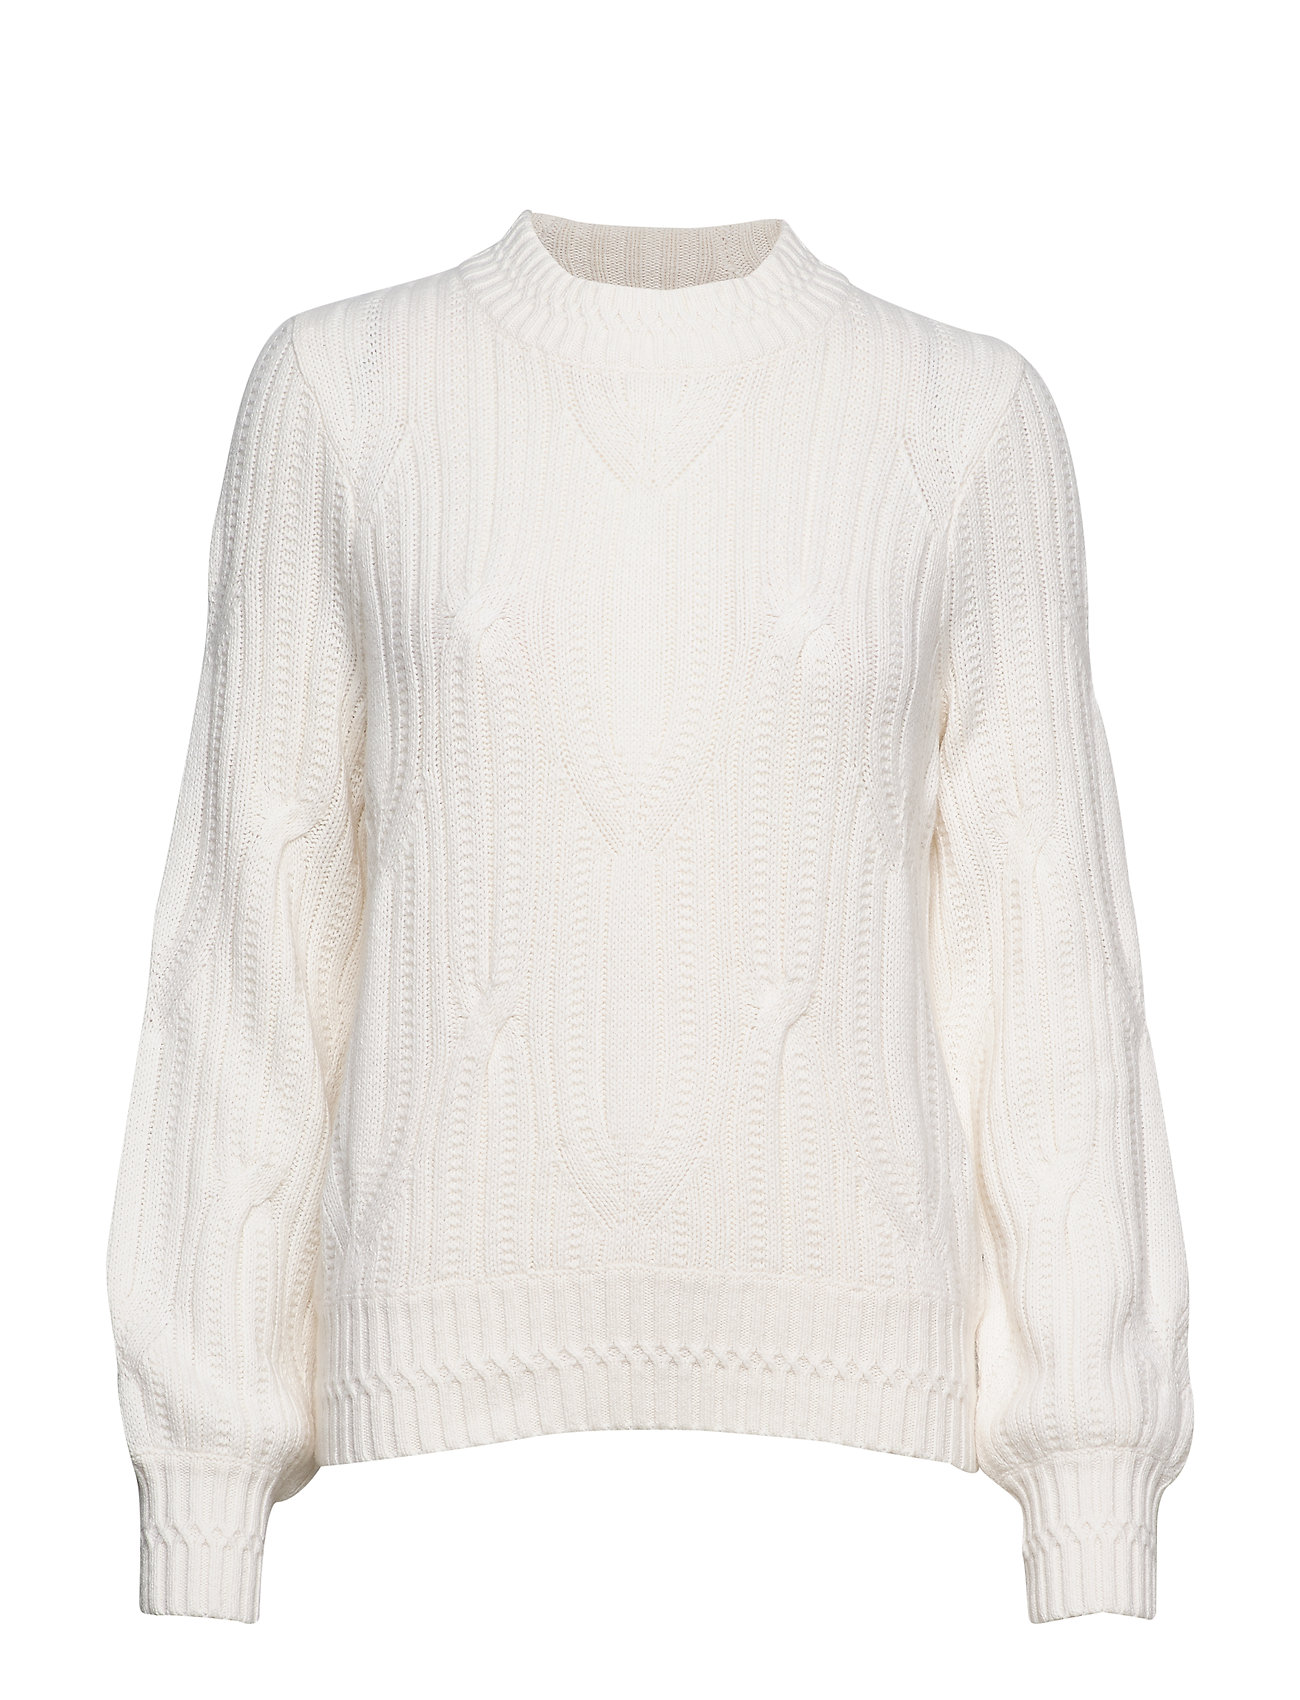 Lexington Clothing Trista Cable Sweater - WHITE